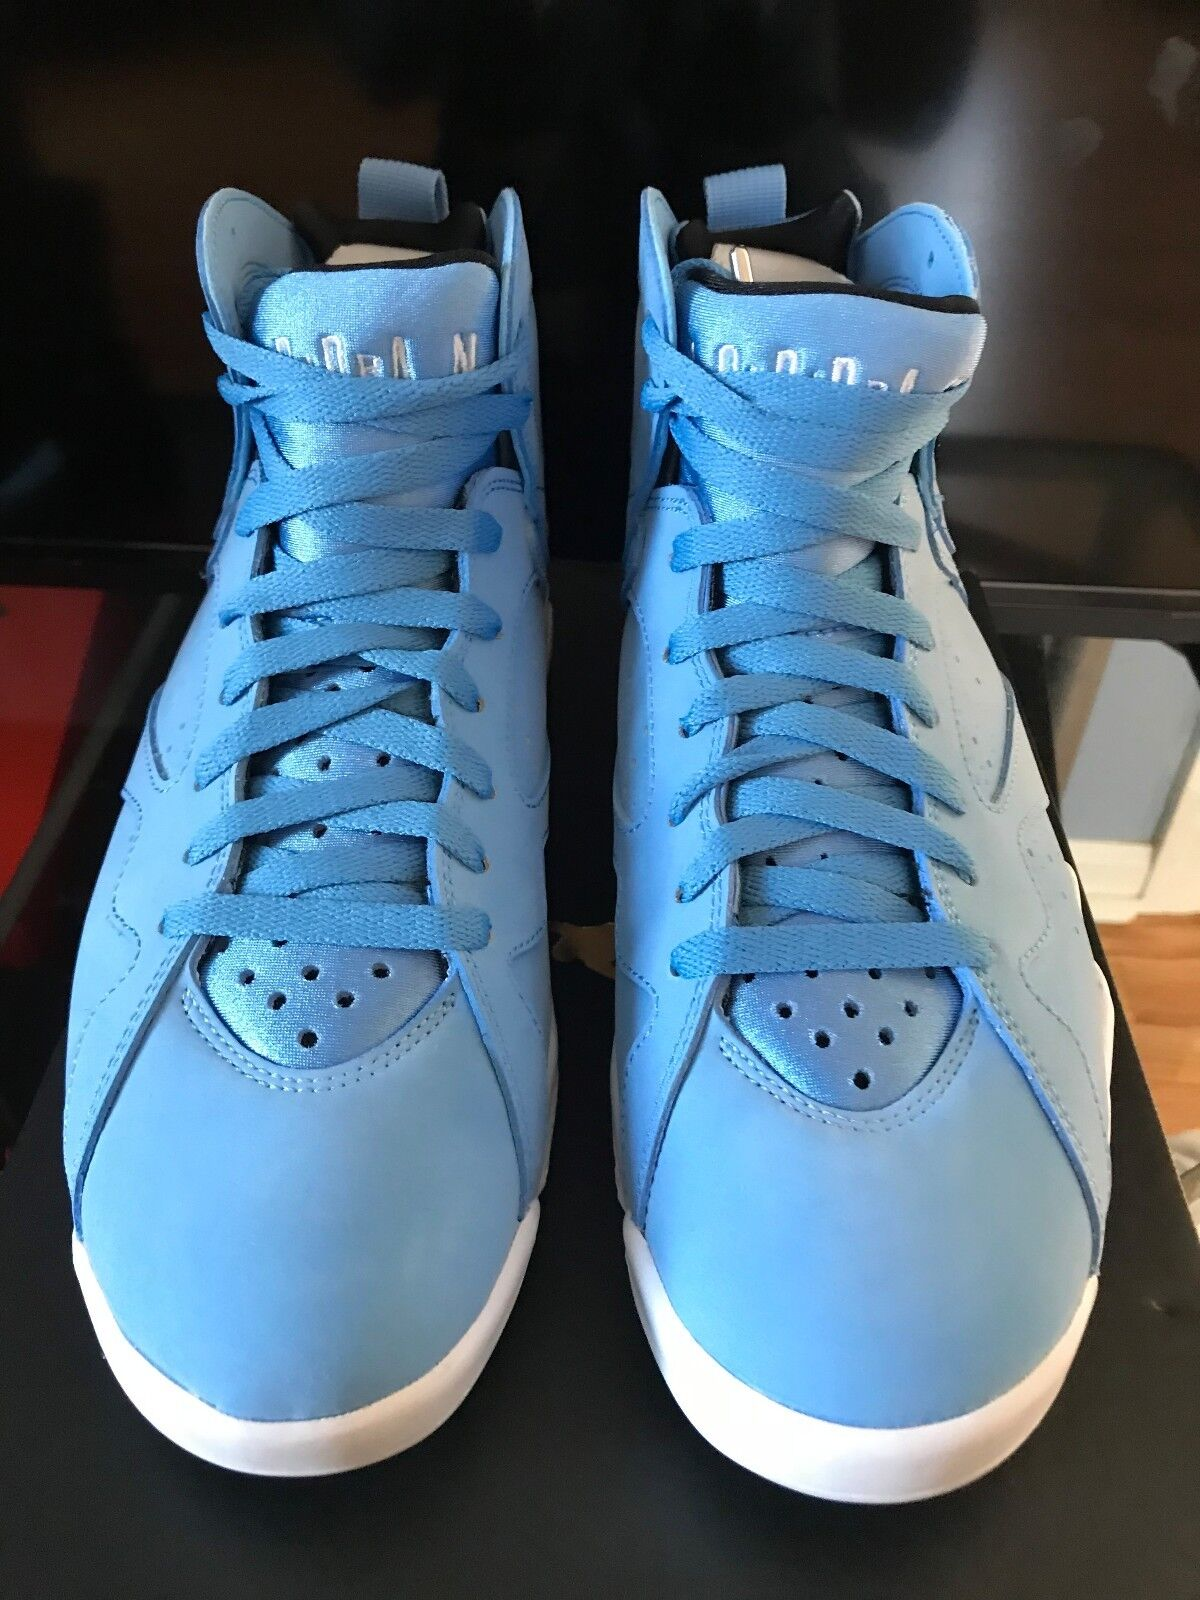 2017 AIR JORDAN VII RETRO 7 BLUE PANTONE WHITE UNC OG 304775-400 MEN'S SZ 7.5